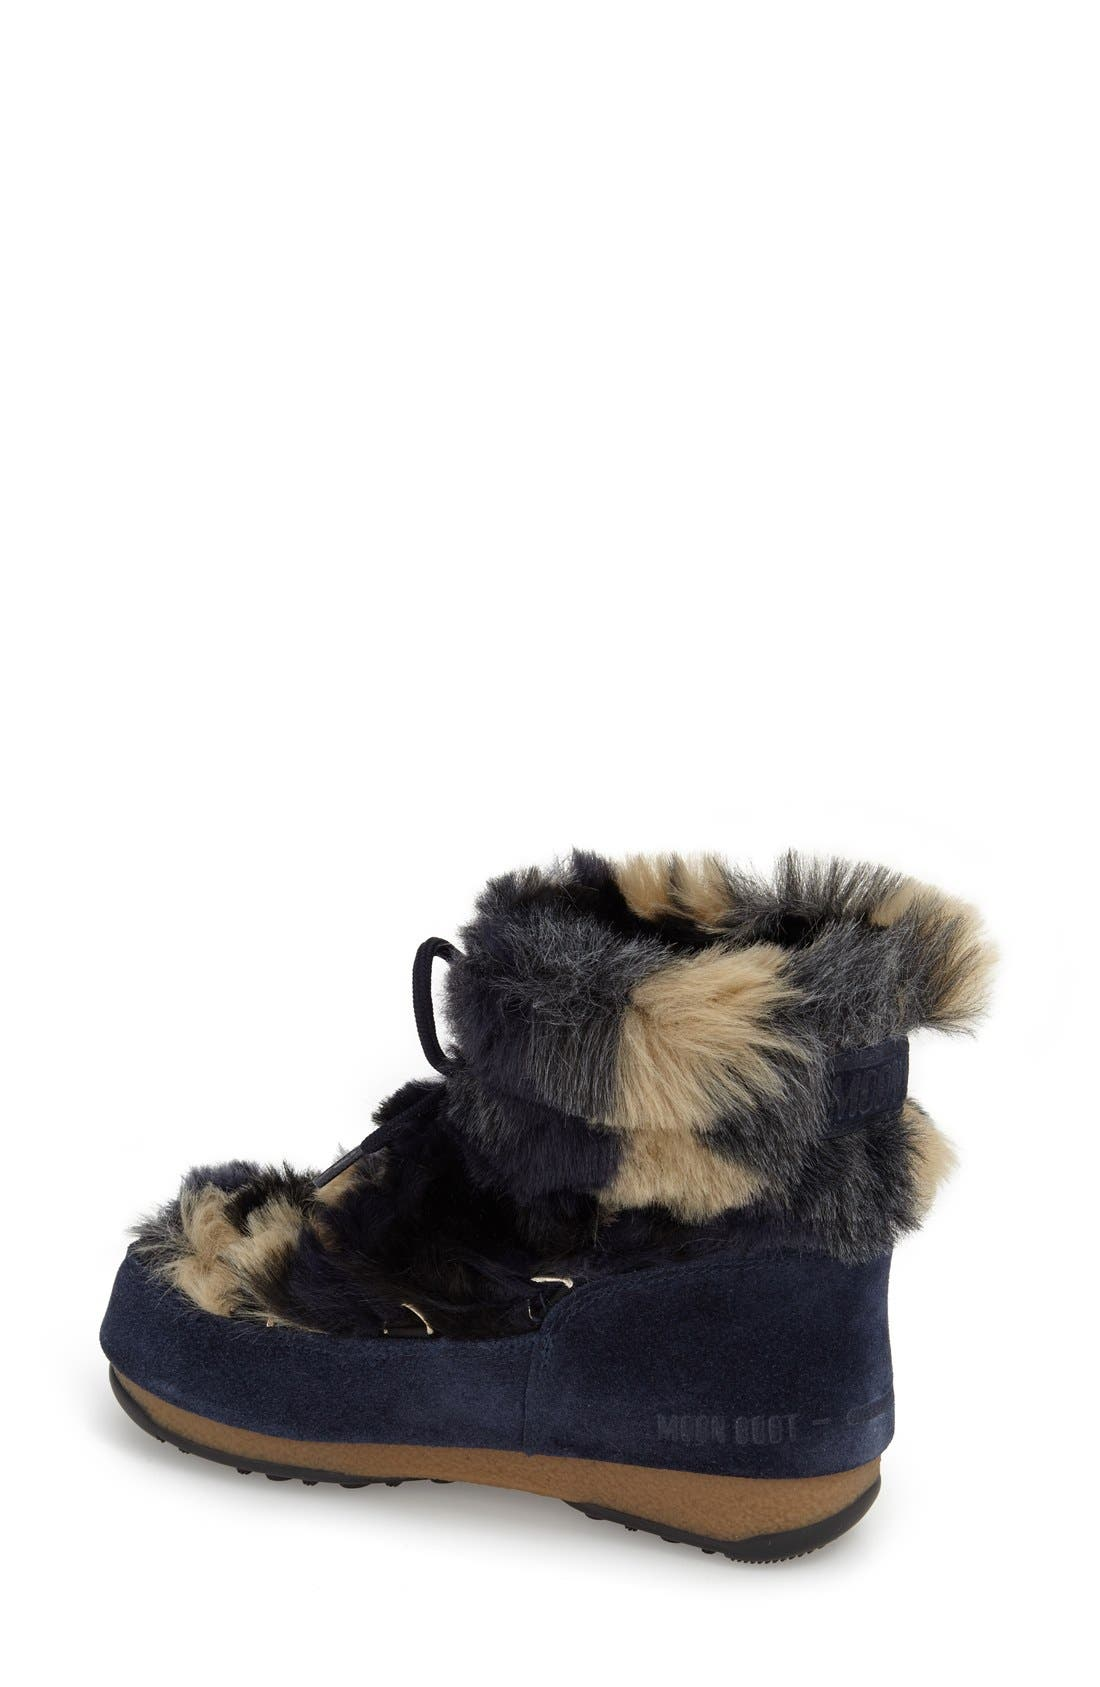 Alternate Image 2  - Tecnica® Camo Flip Paillette Water Resistant Insulated Moon Boot® with Faux Fur Lining (Women)